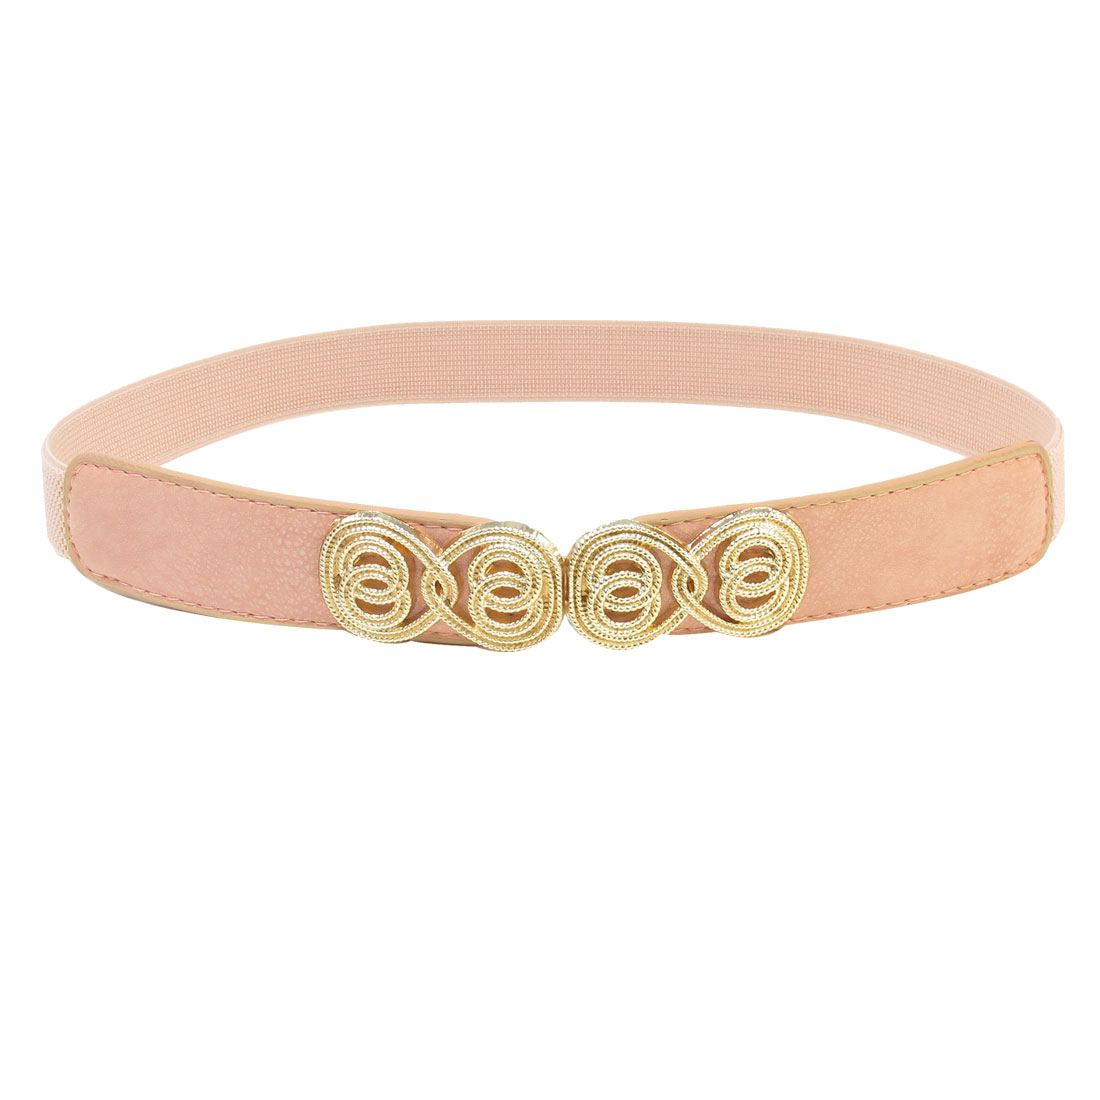 Pale Pink Faux Leather Interlocking Buckle Stretched Belt for Women